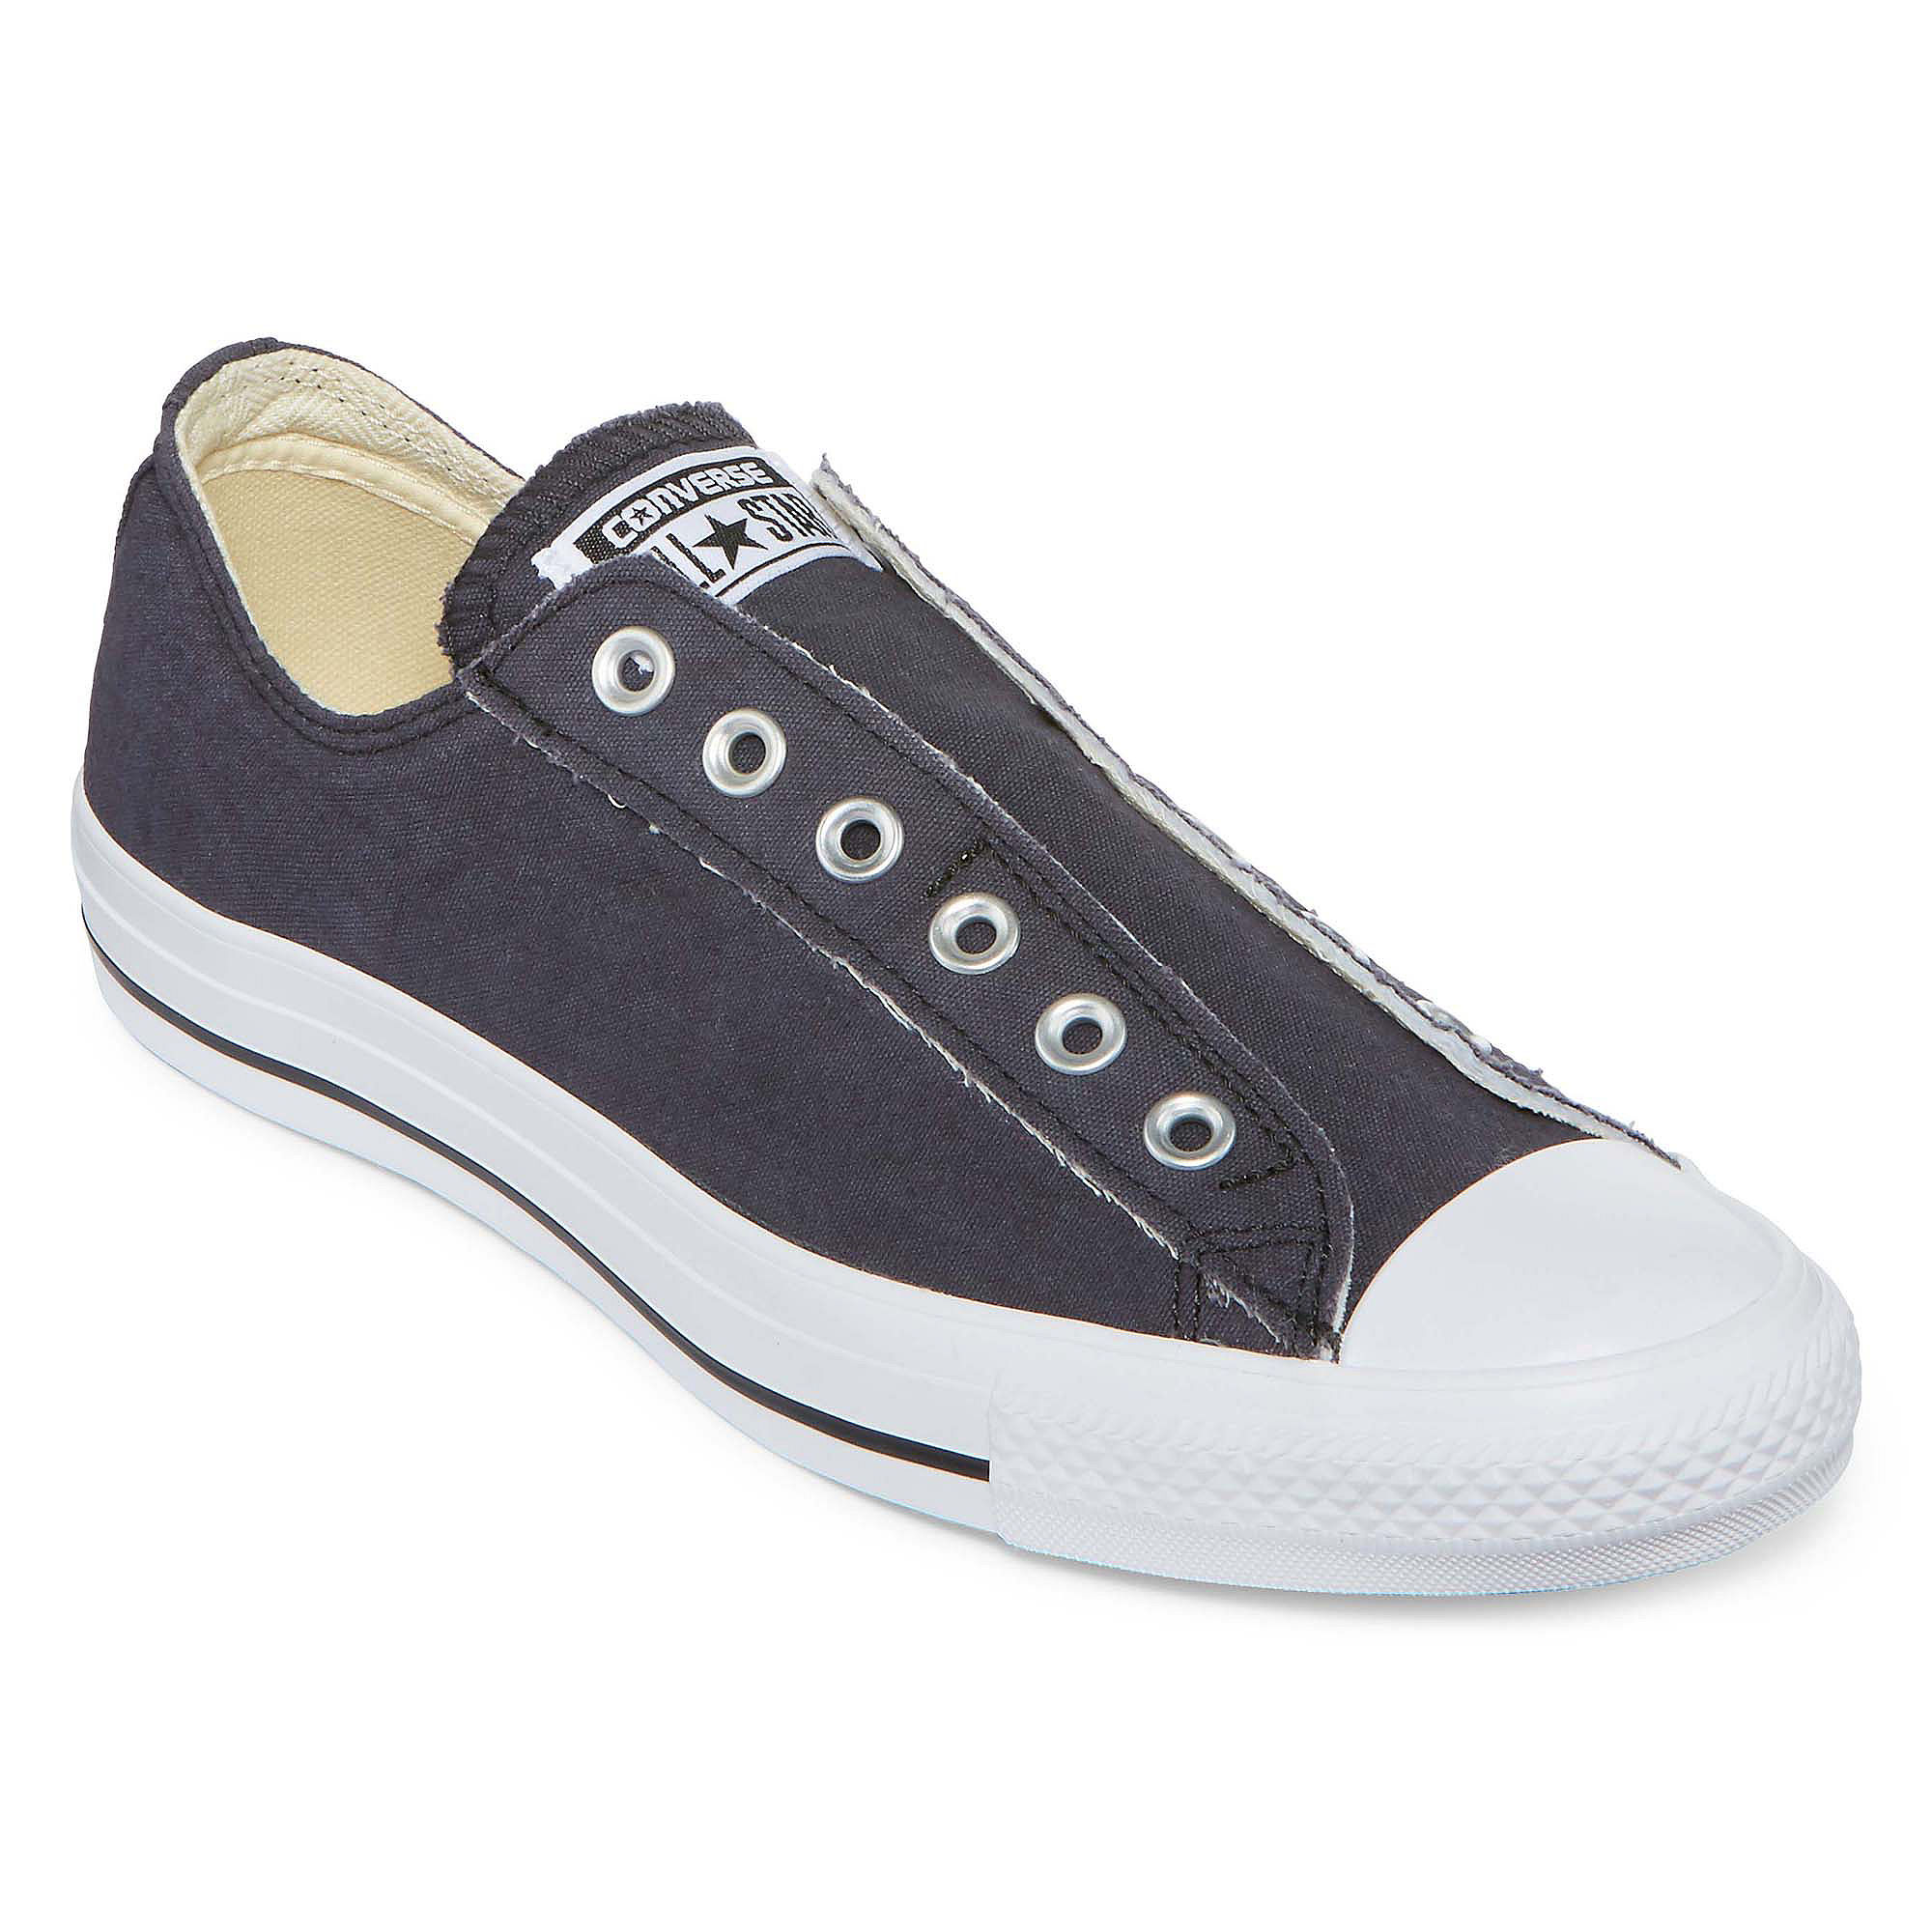 c8cdc70ae3b3 ... Black Mens UPC 022863343674 product image for Converse Chuck Taylor All  Star Laceless Sneakers